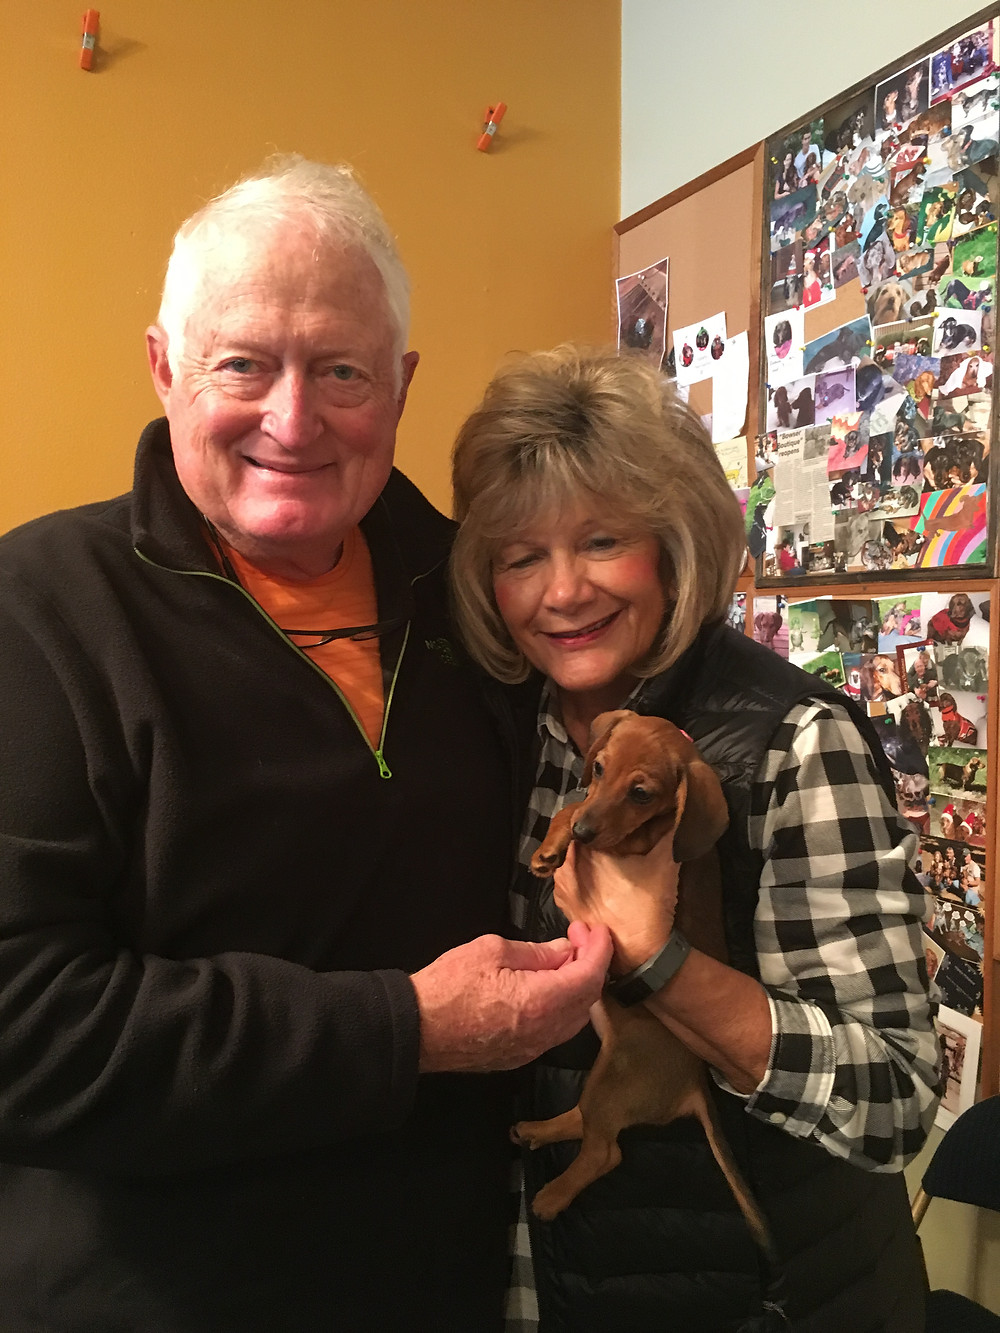 Heidi with her new parents.